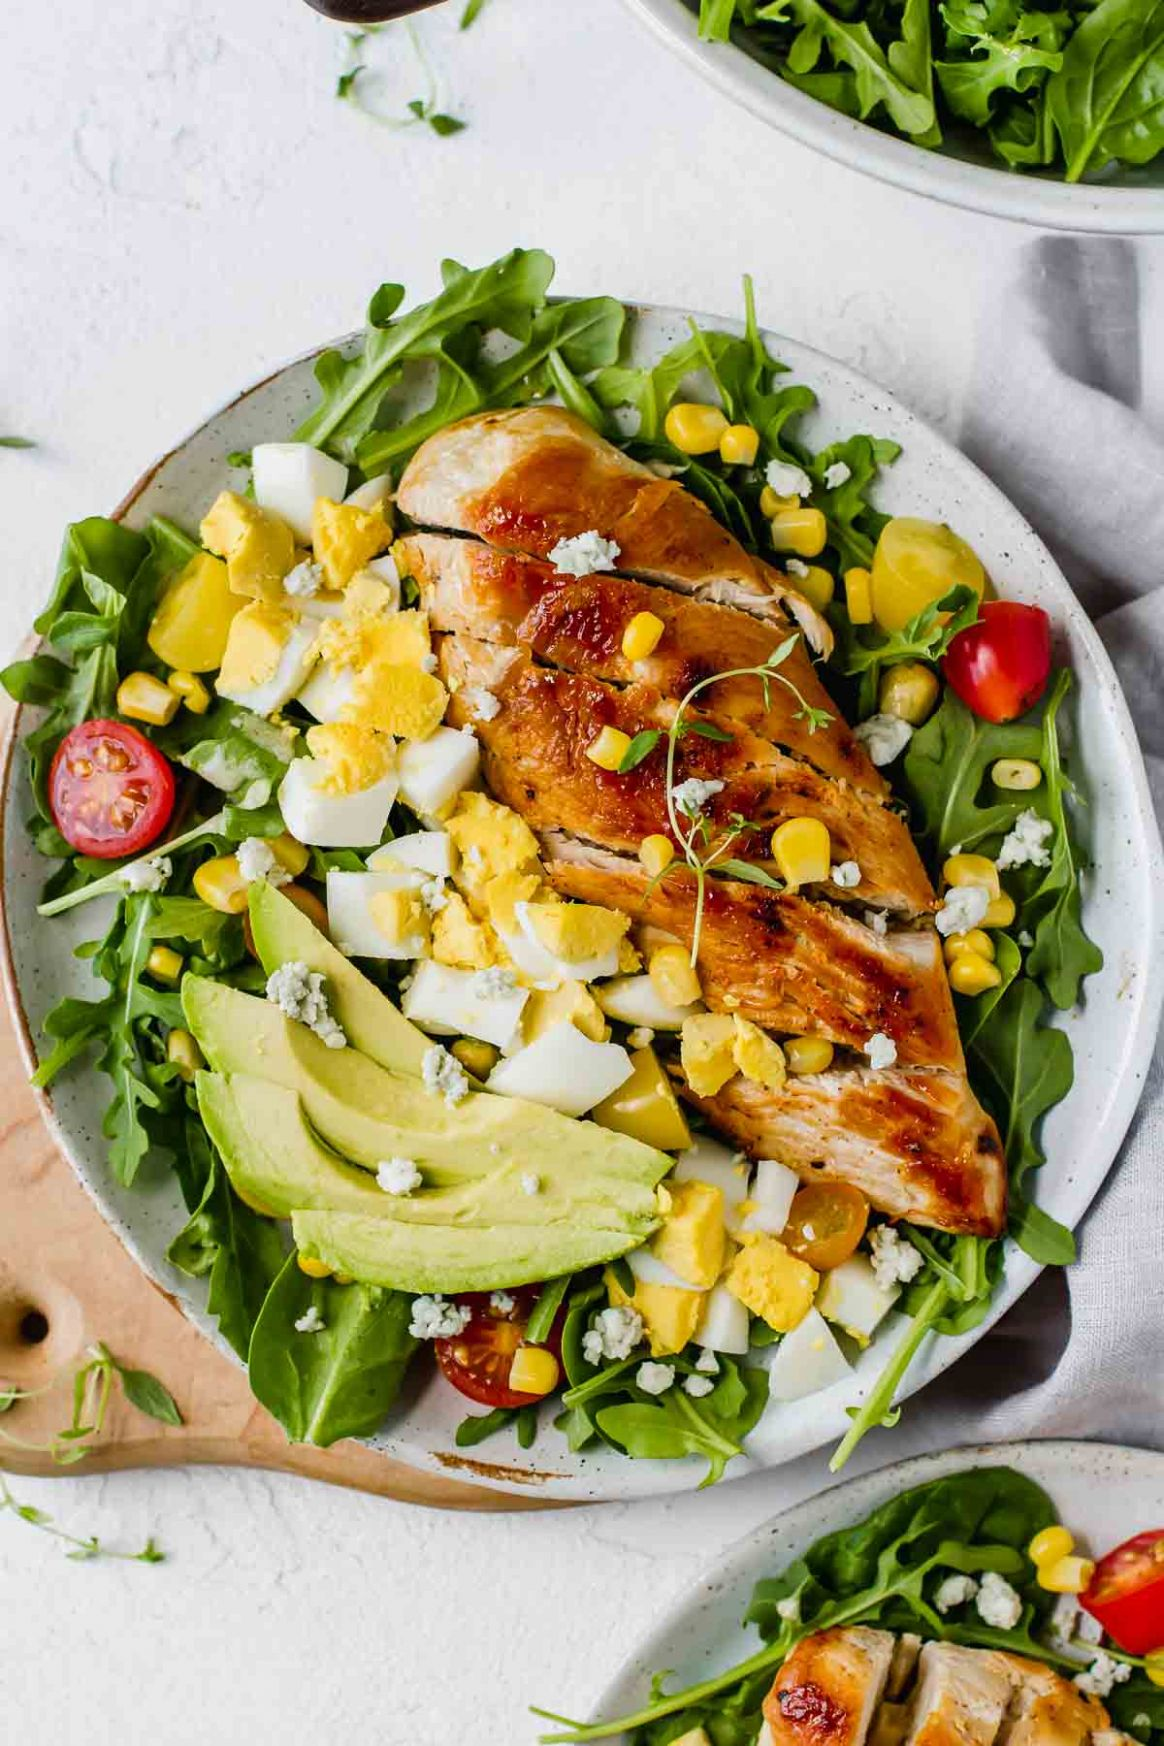 Healthy Chicken Cobb Salad Recipe - Healthy Chicken Recipes